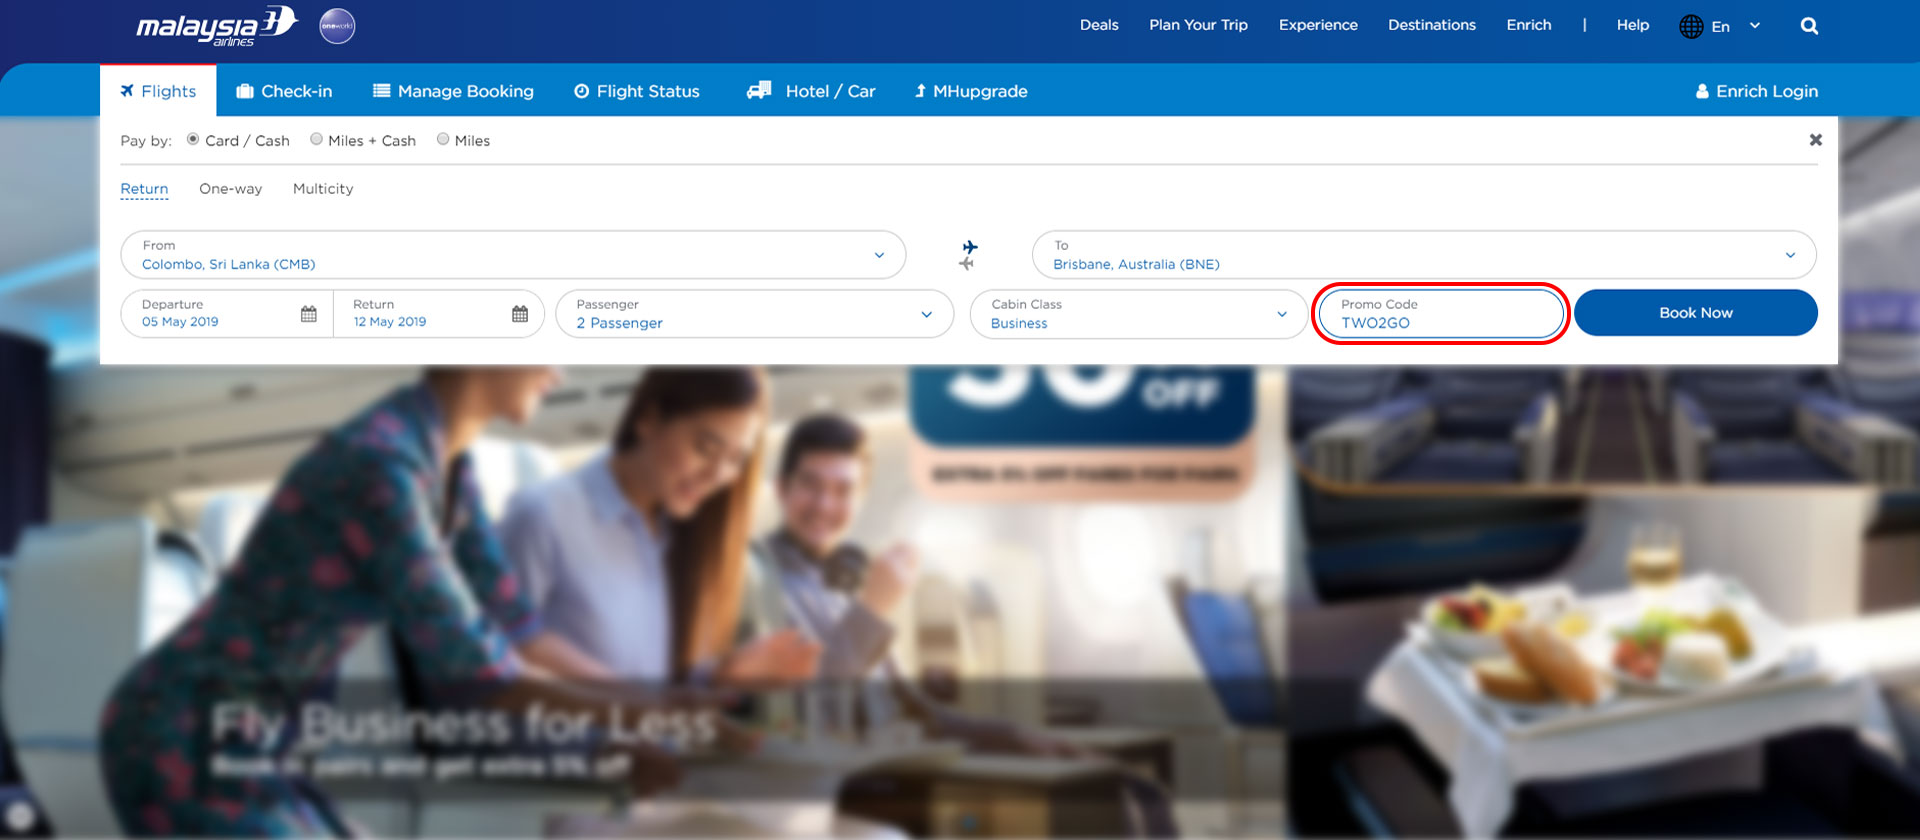 Use Malaysia Airlines Coupon Code